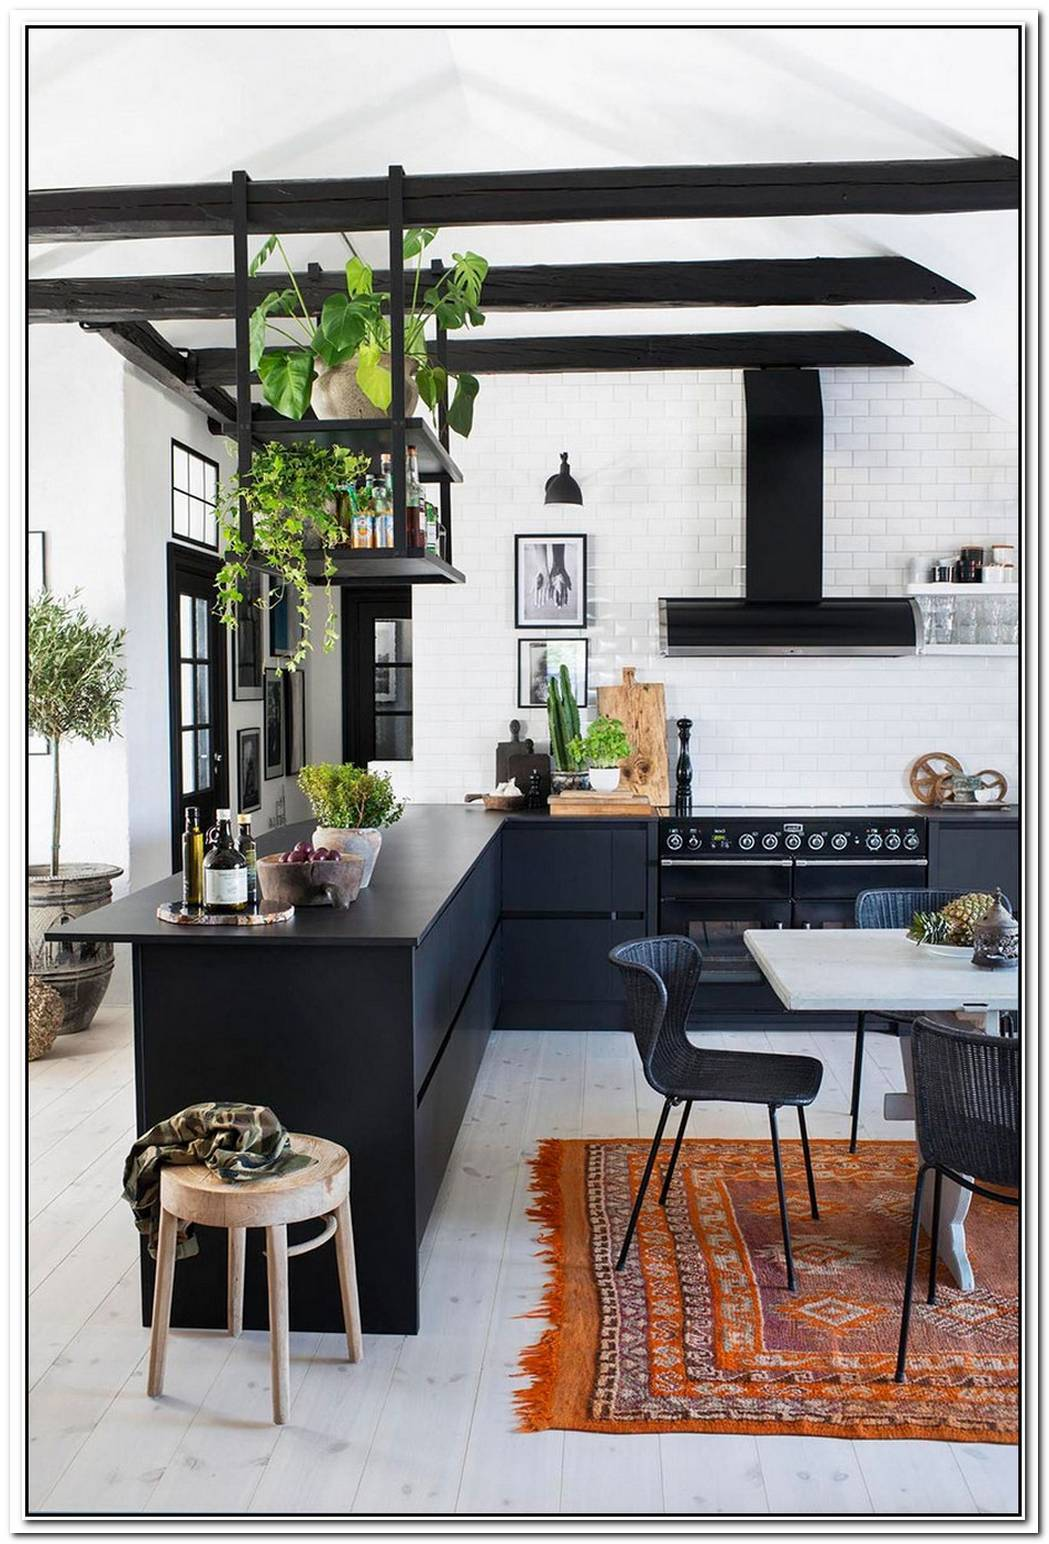 A Charming Attic Apartment In Sweden